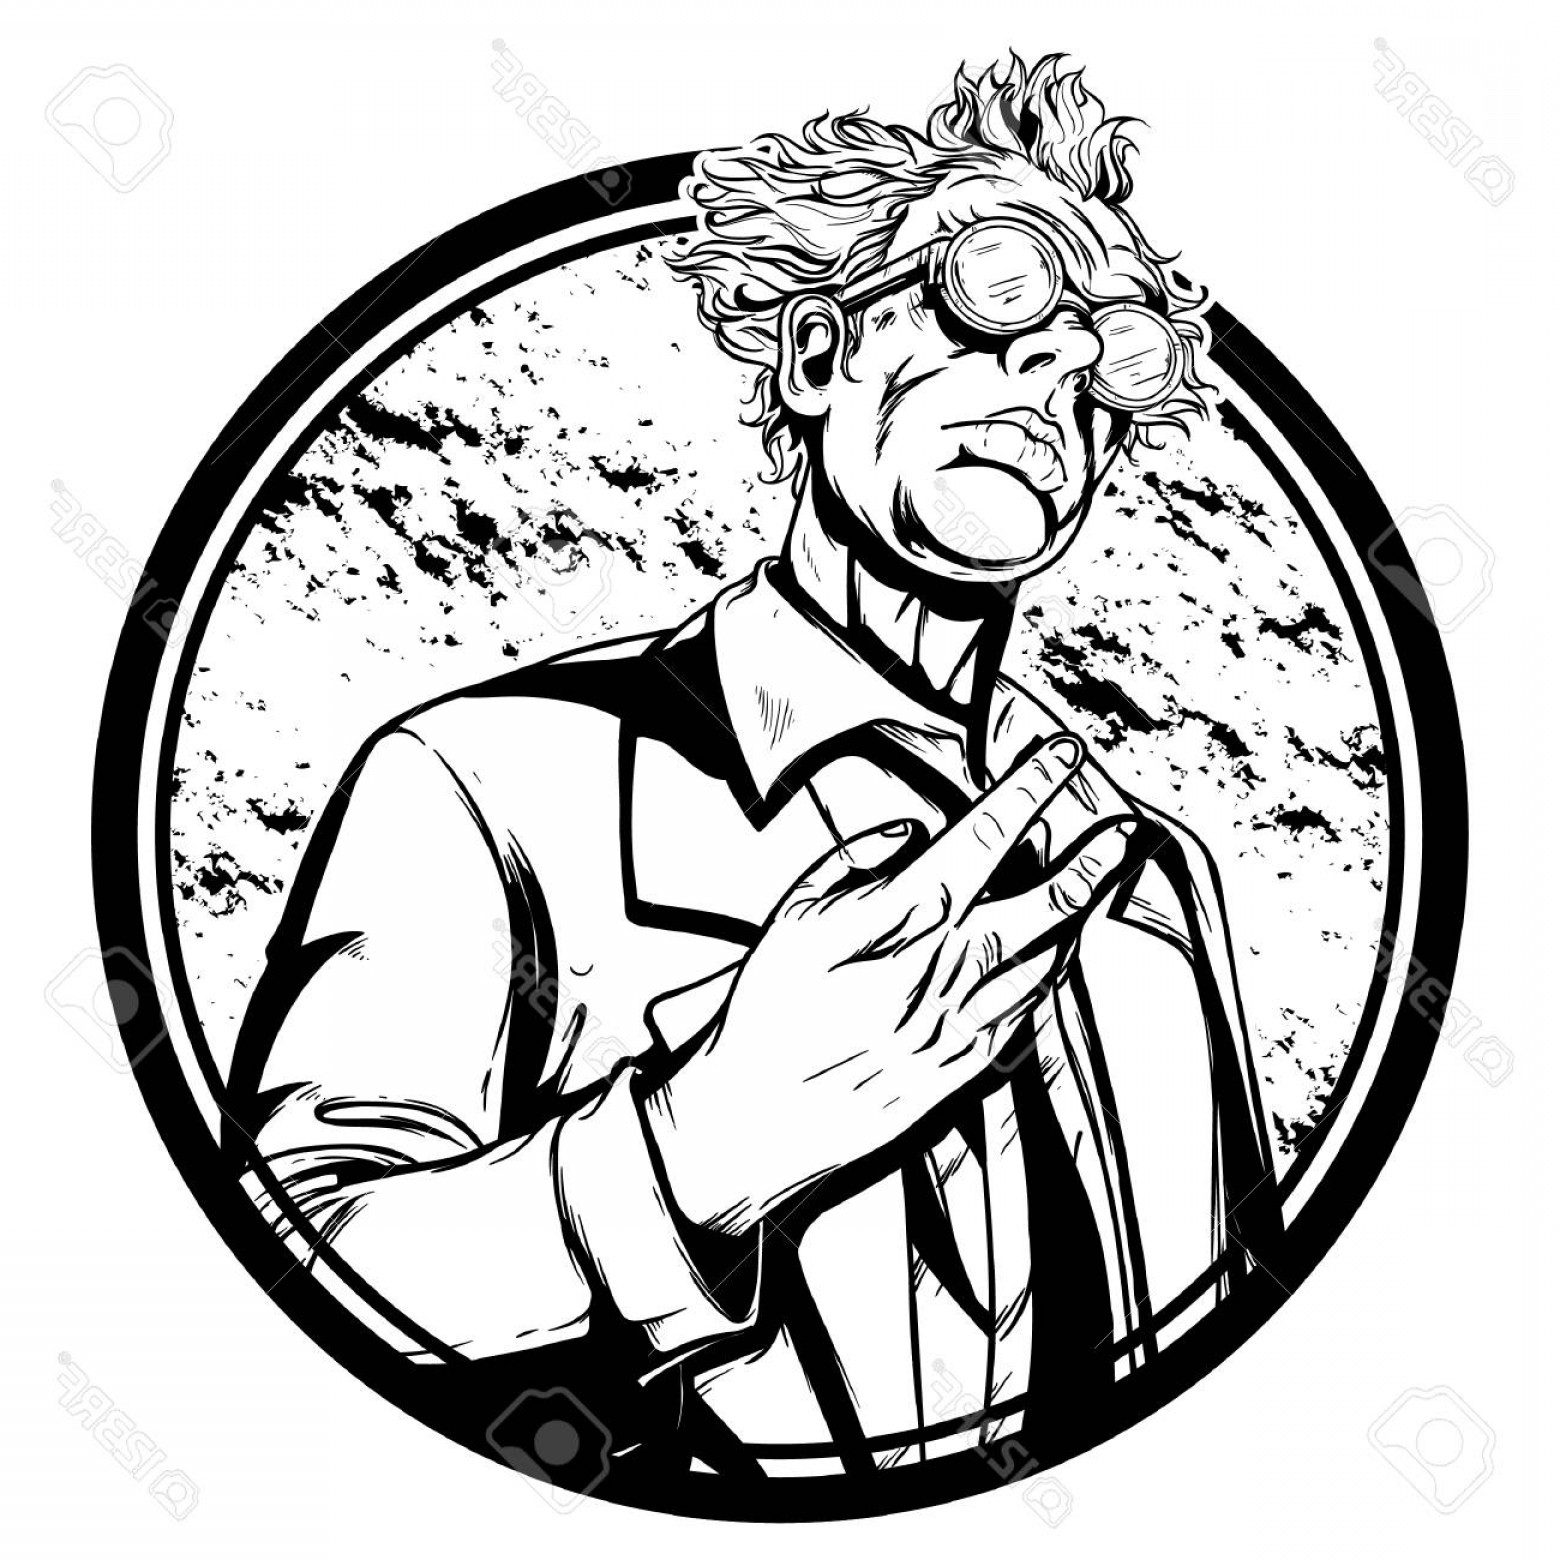 Mad Vector: Photostock Vector High Detailed Mad Scientist Illustration Vector